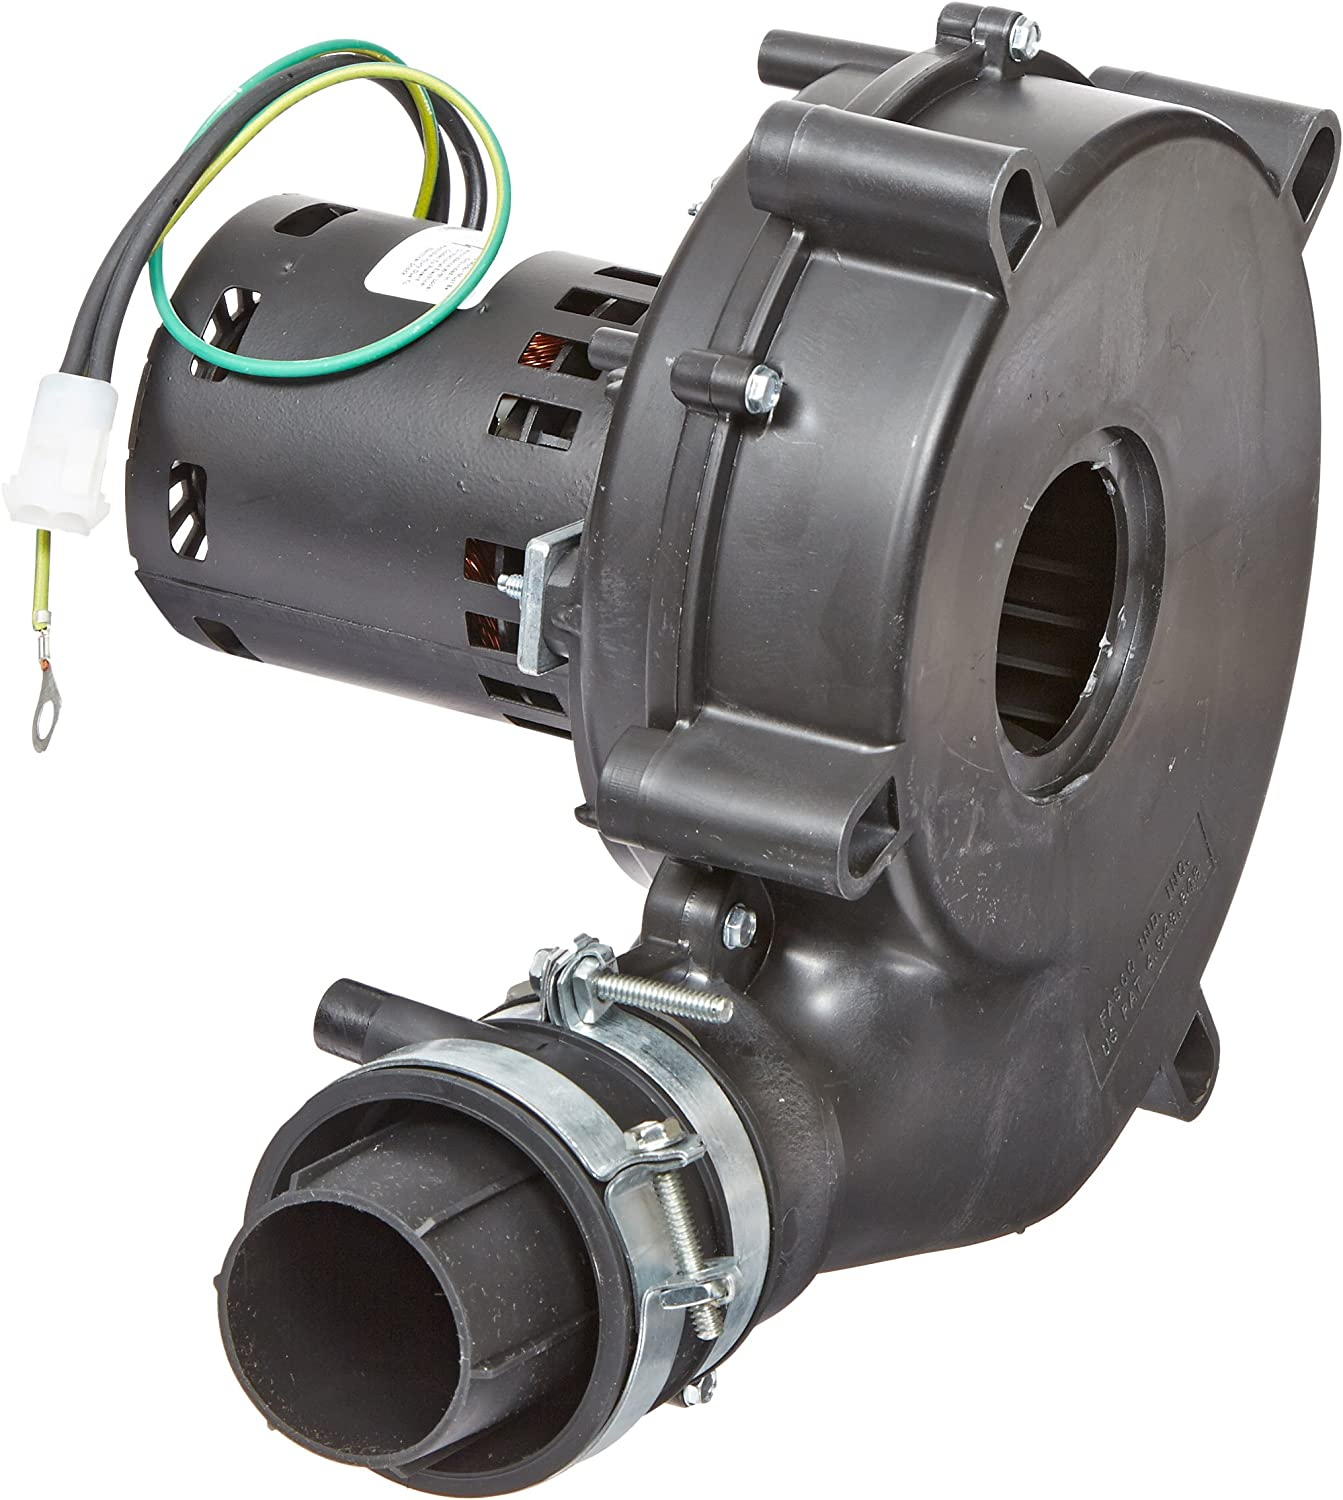 Fasco Motors A225 Inducer Motor Brand new Discount mail order Draft